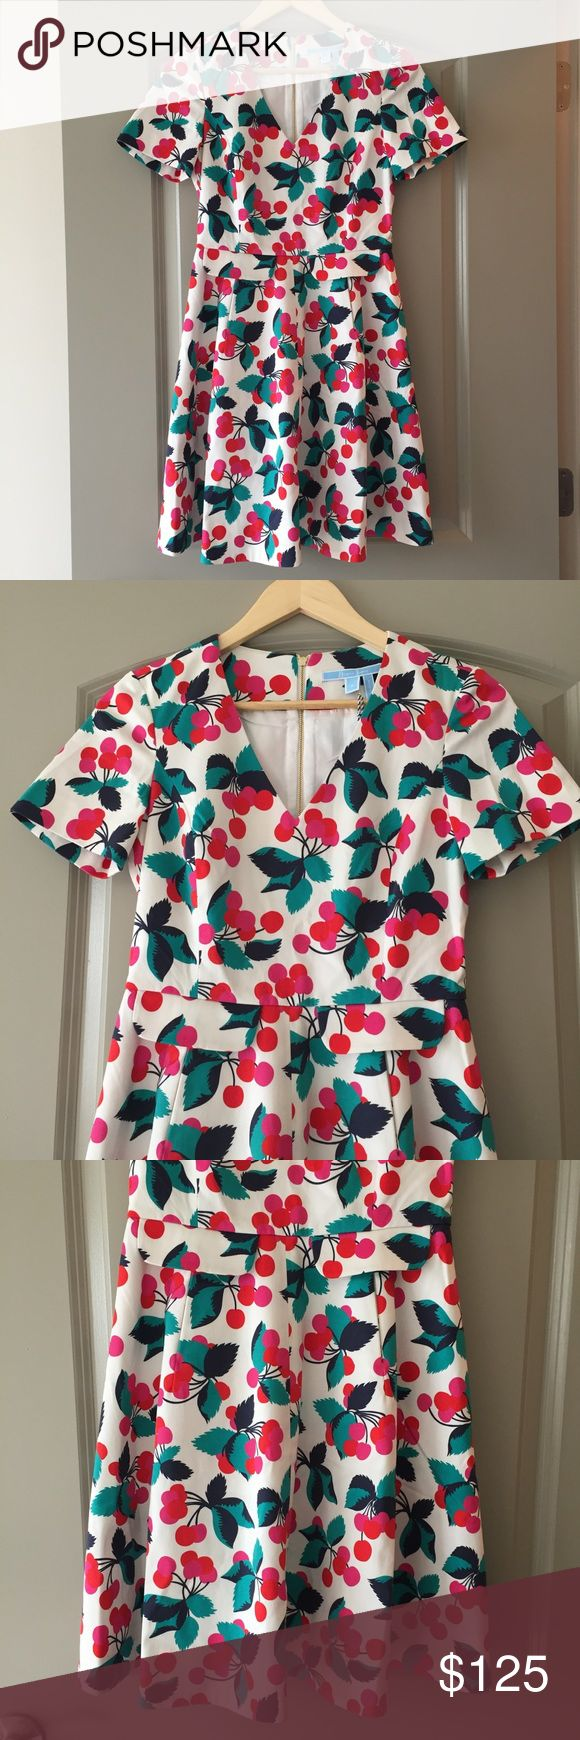 Sz 0 Draper James Cherry Orchard Love Circle Dress ***DISNEY LOVERS!! This dress would be perfect for Dapper Day @ Disney World!!*** This is NWTs, has never been worn and was bought from the Draper James website. No flaws. It is a size 0. I would have loved to keep it but I felt it looked too big/boxy on my petite frame. Price is firm due to posh fees and I'm trying to make back what I bought it for! Still available online but cheaper if you buy from me (no tax!). Draper James Dresses